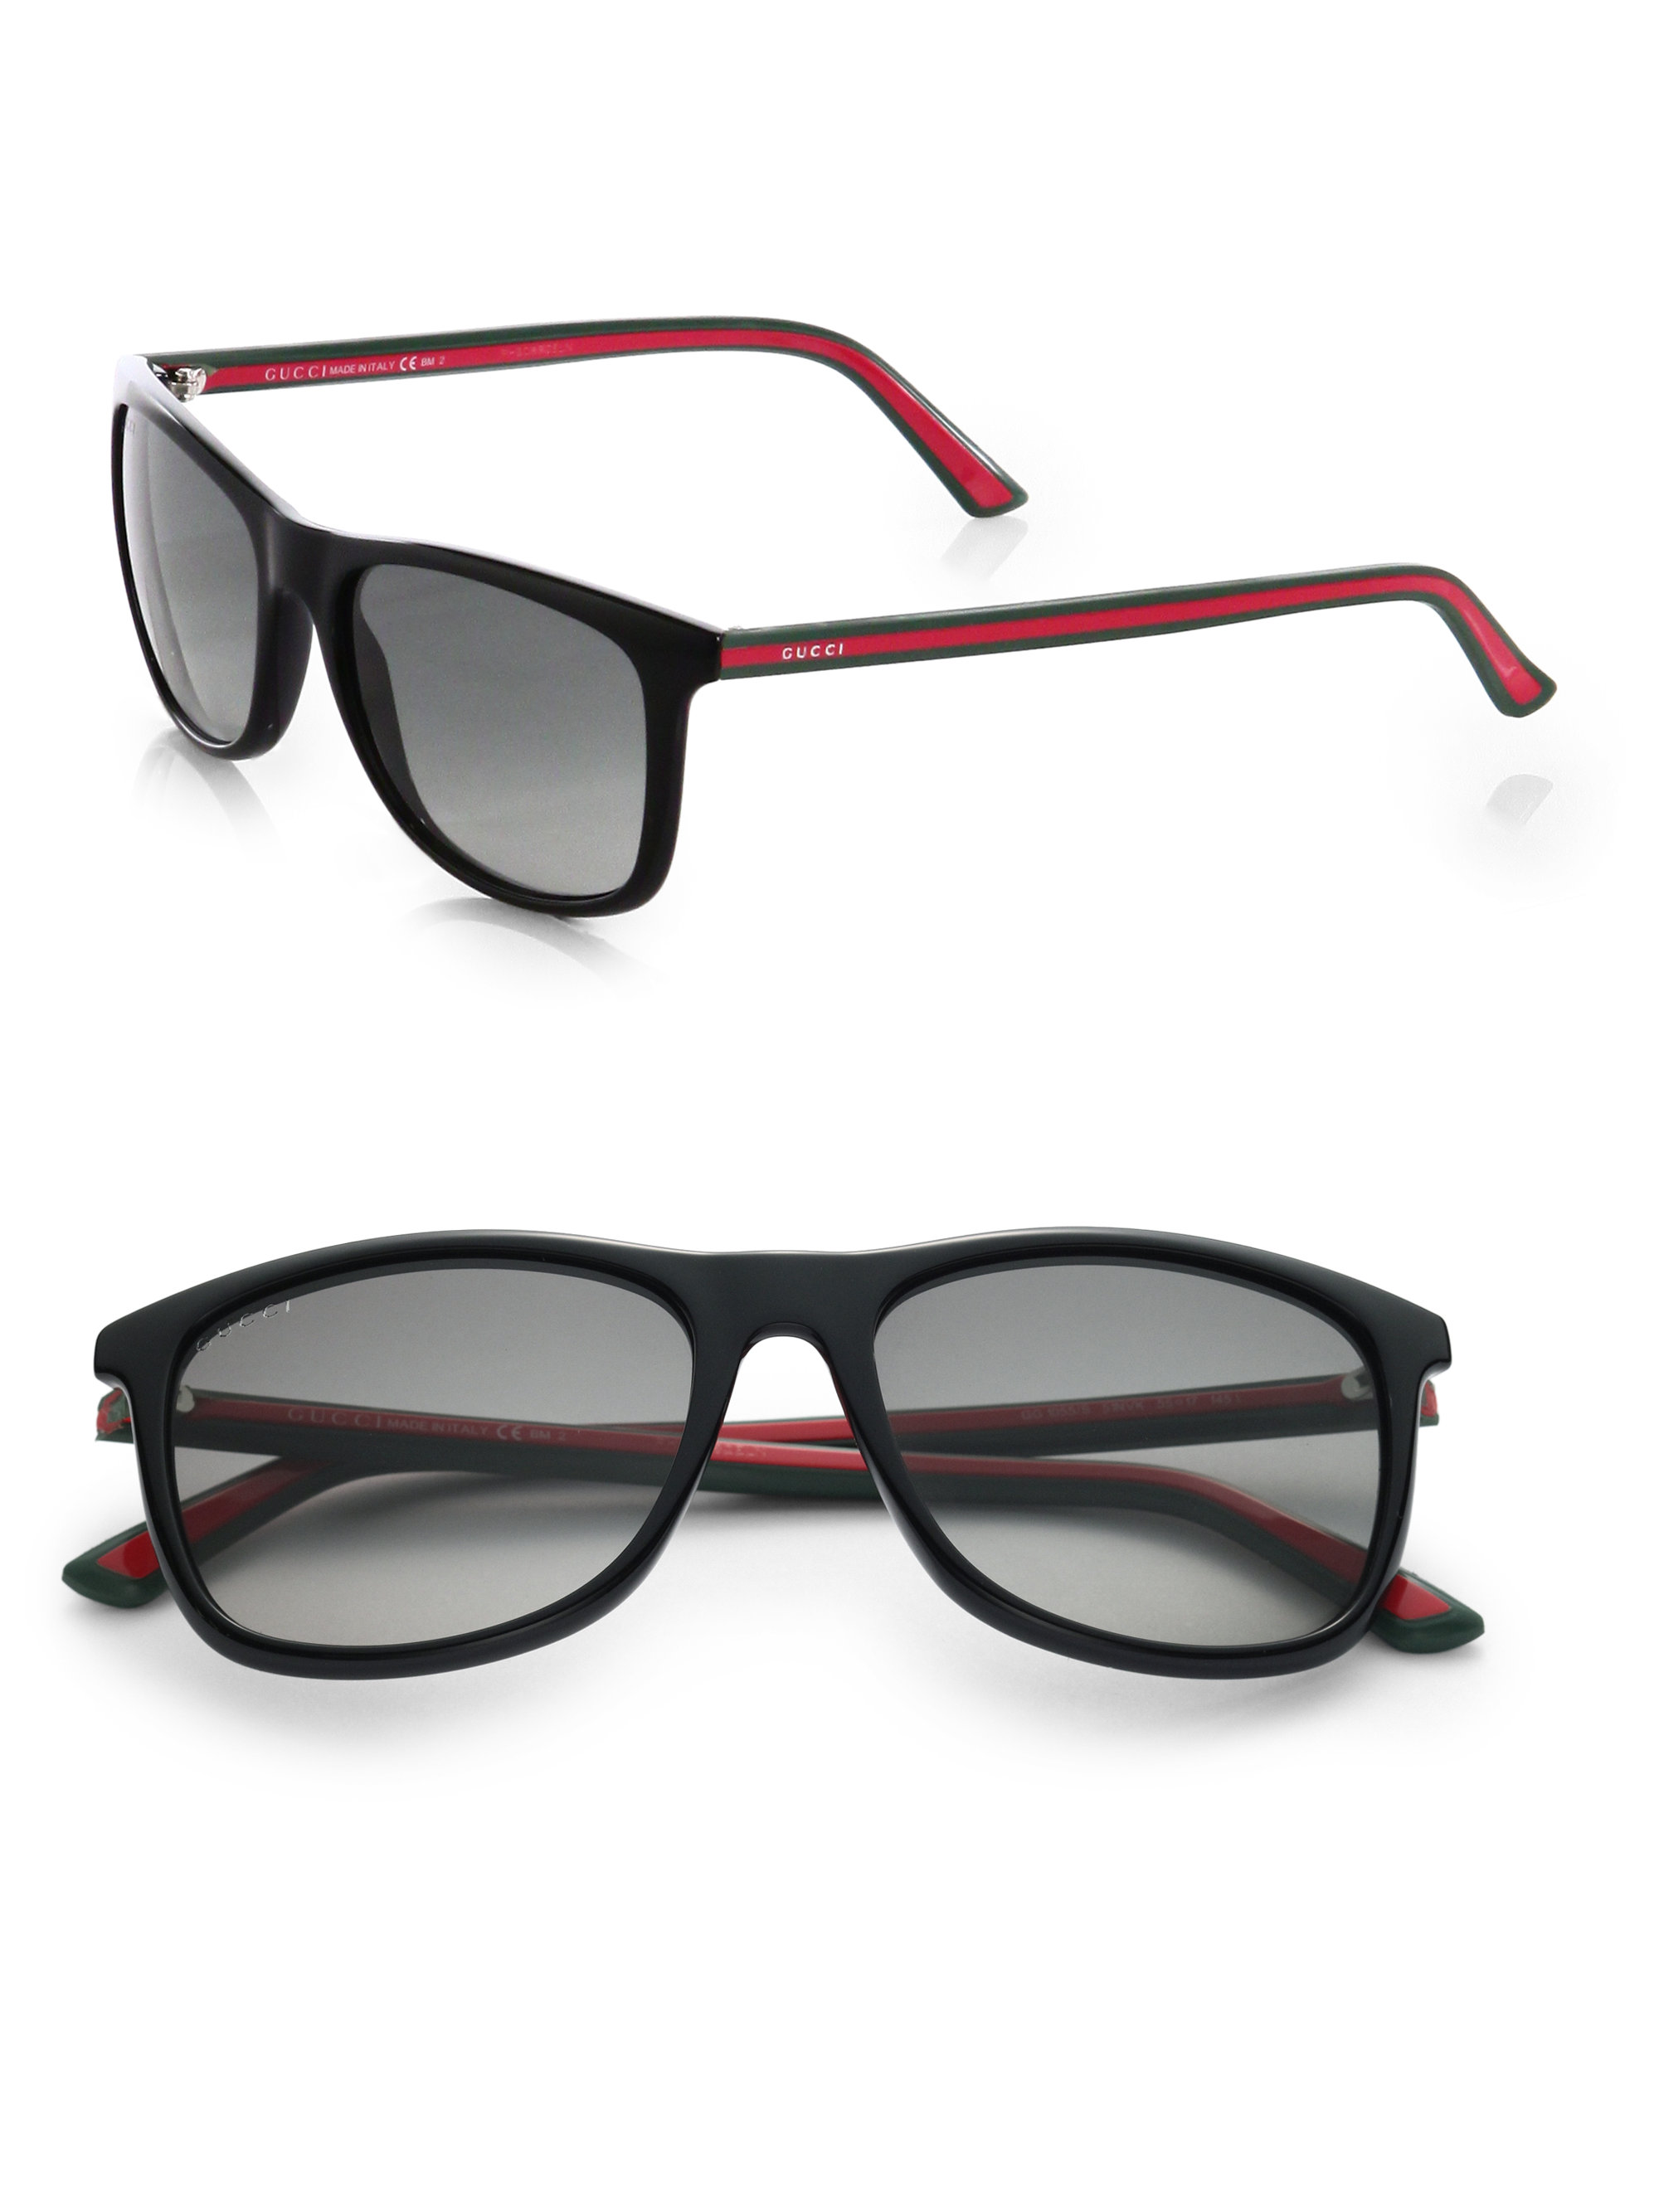 Gucci Injected Propionate Two Two Wayfarer Sunglasses In